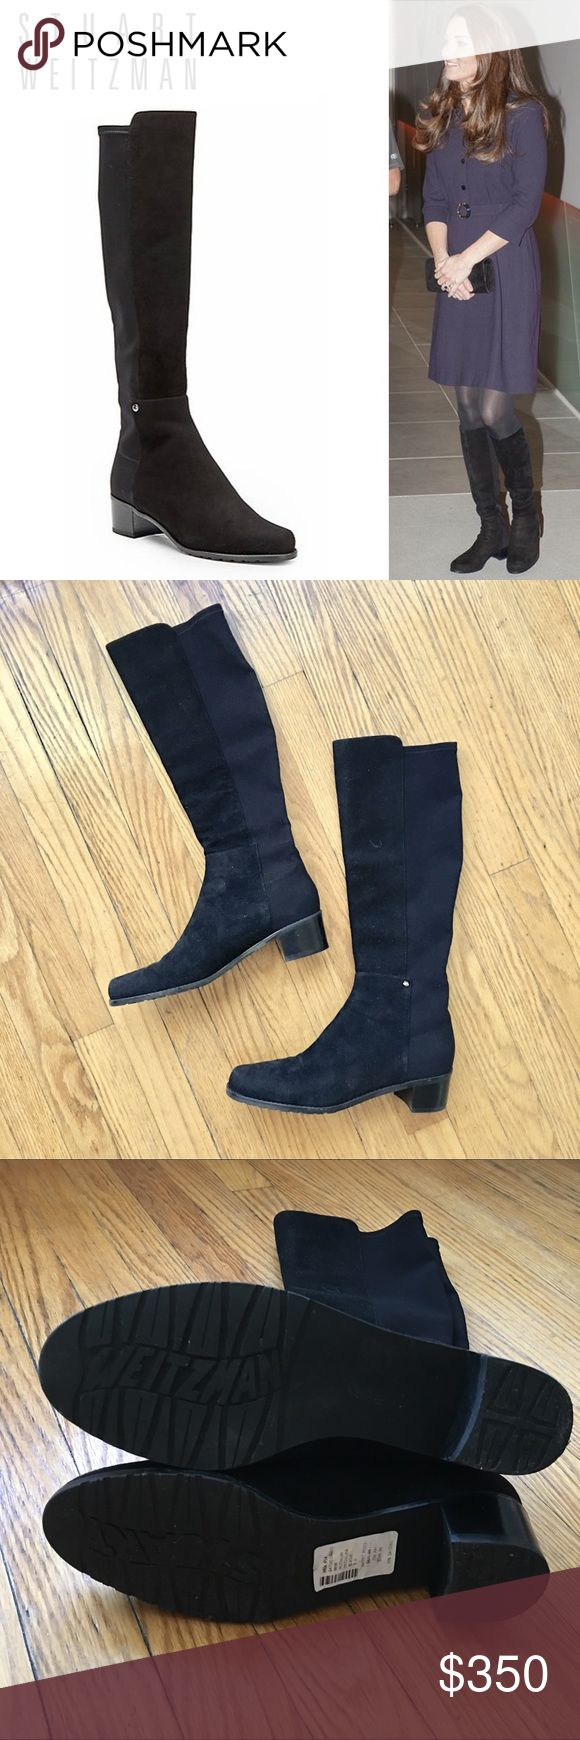 LIKE NEW Stuart Weizmann Mezzaluna Boots Worn once boots. A style loved by Kate Middleton and myself. Similar design to 5050 but under the knee. Have to give up because it's too large for me. Retail 600+ and I got it for $400. From smoke free pet free home. ✨No low ball offers 🚫No trade🚫 Stuart Weitzman Shoes Heeled Boots